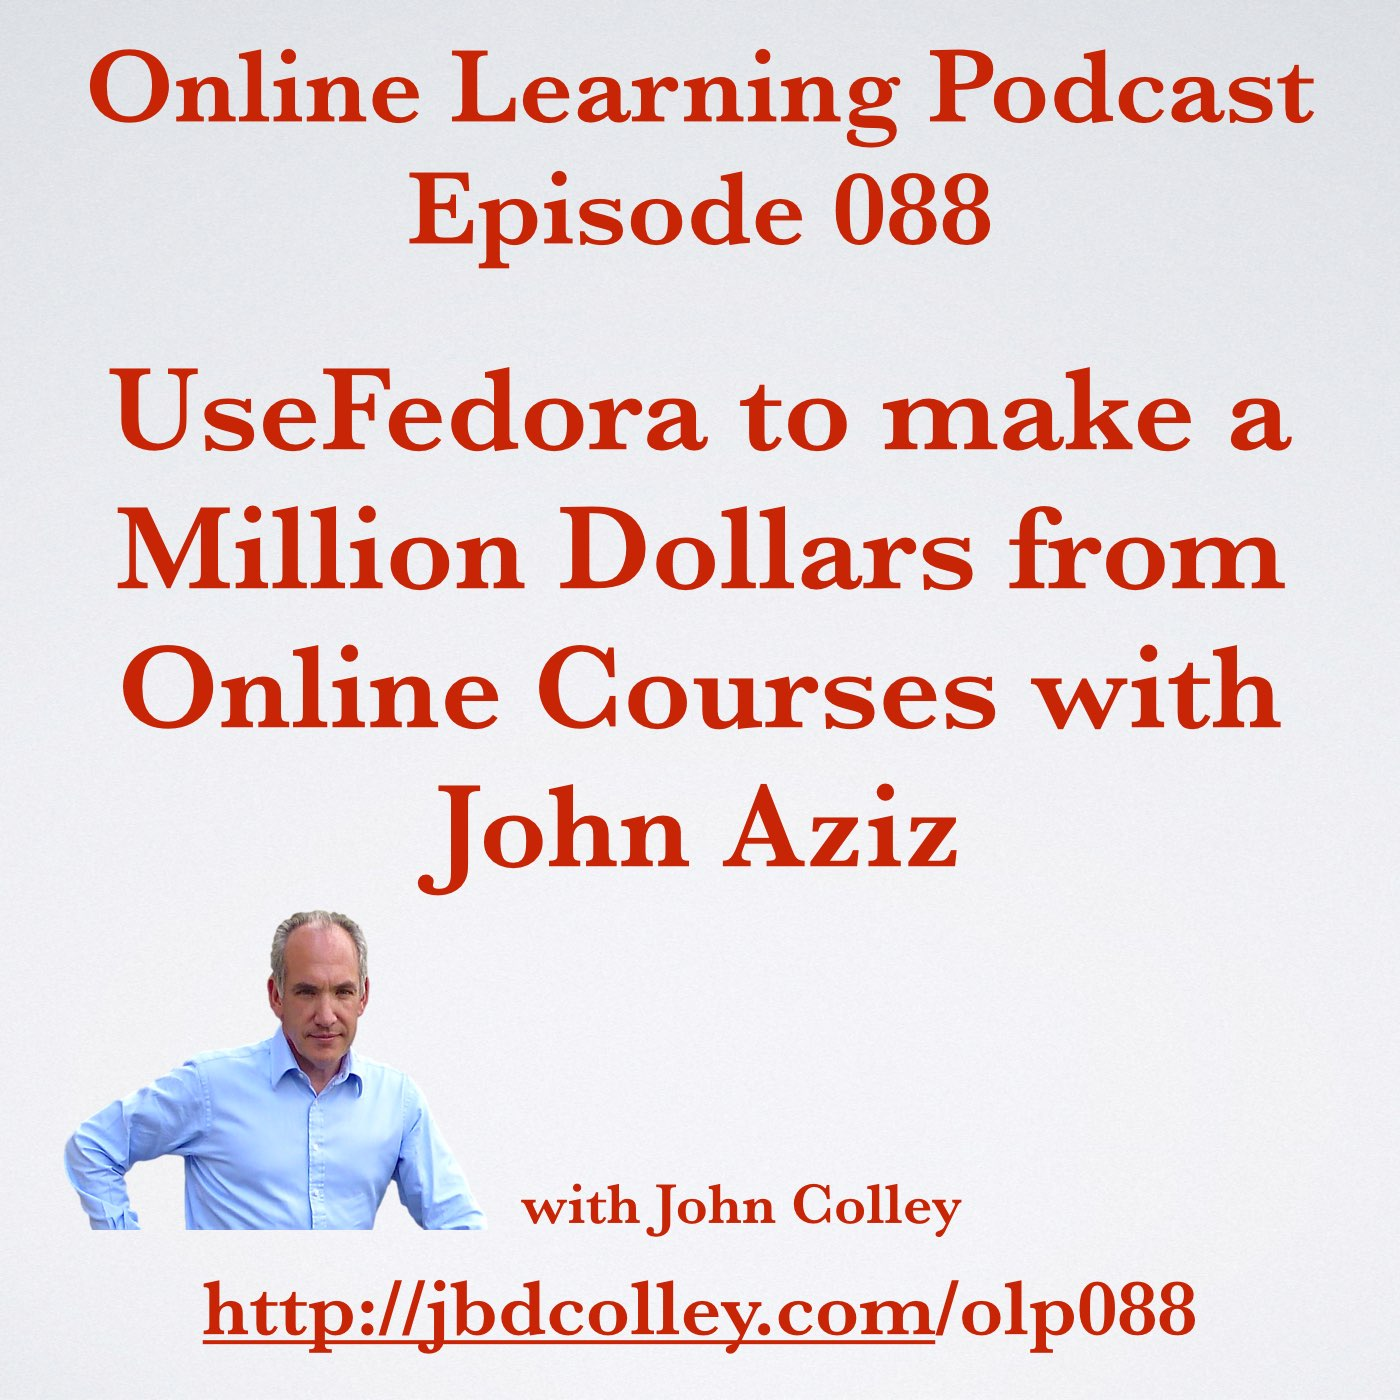 OLP088 Use Fedora to make a Million Dollars with Online Courses with John Aziz